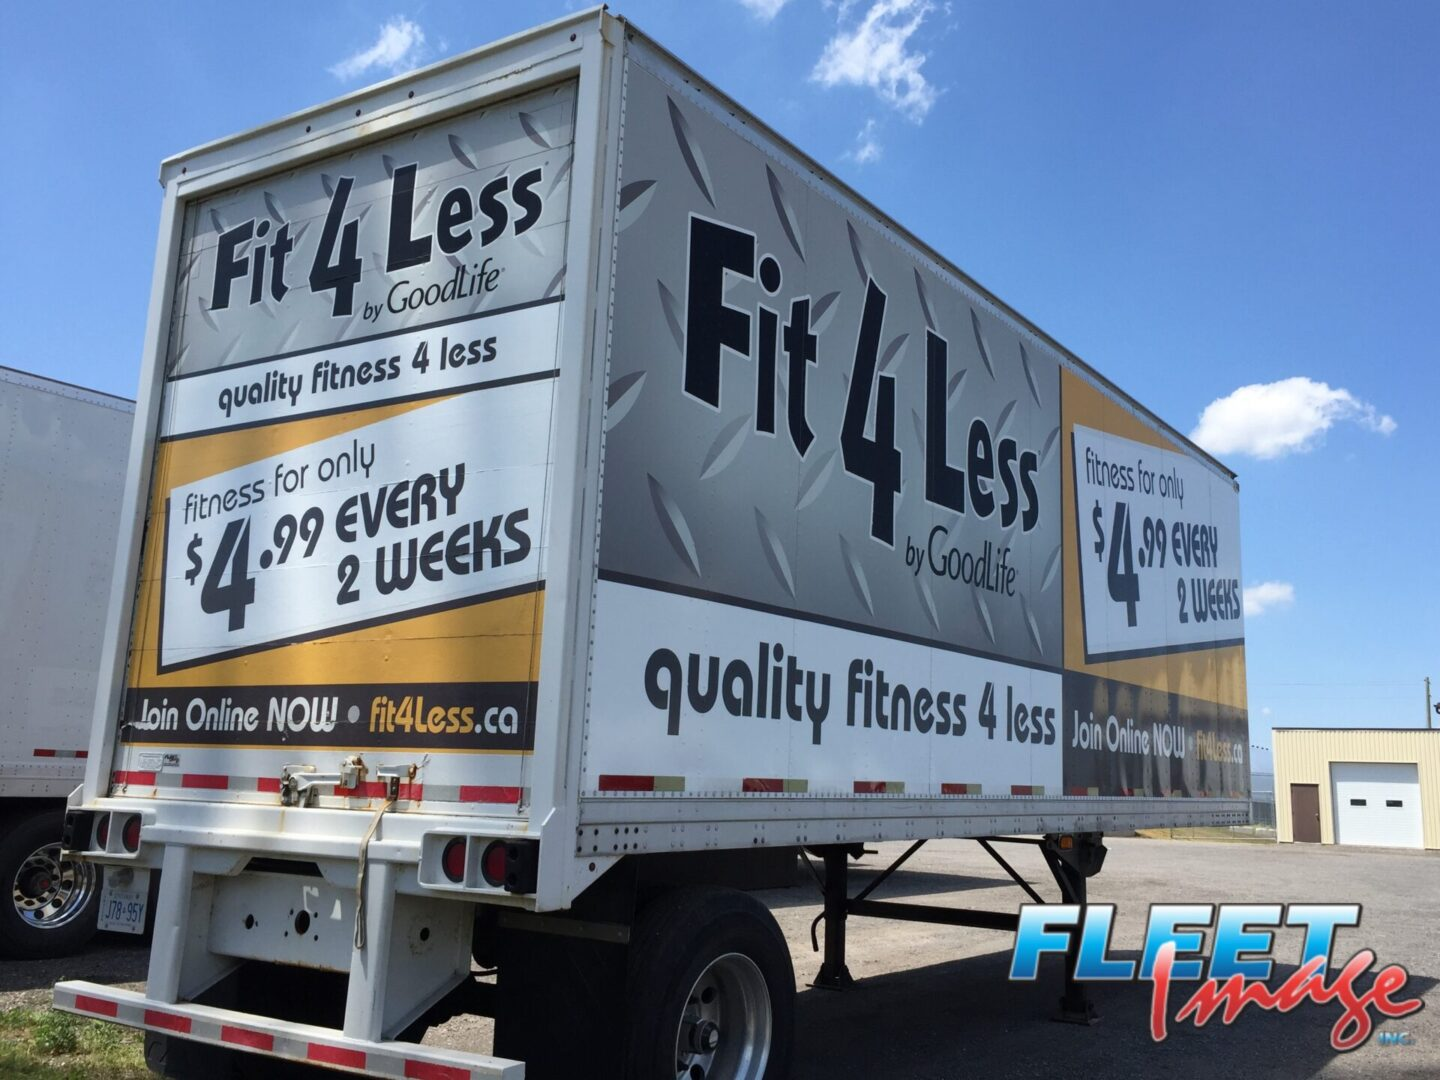 Fit 4 Less by GoodLife decal sticker on a truck